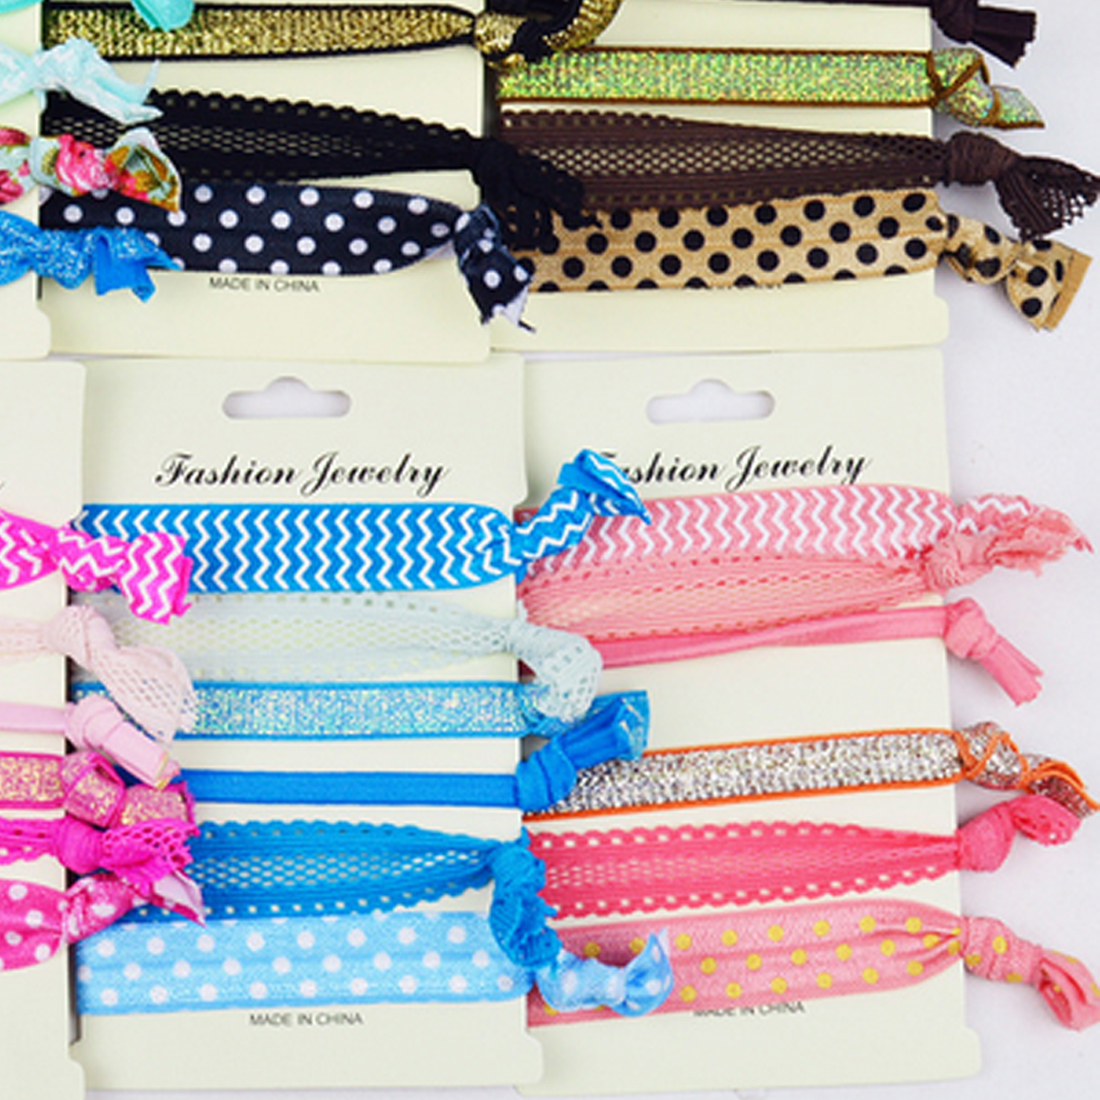 6PCS/Set Women Girls Pattern Elastic Hair Band Ponytail Holder Bracelets Rope Hairband Silk Cloth Knotted   Headwear   Accessories